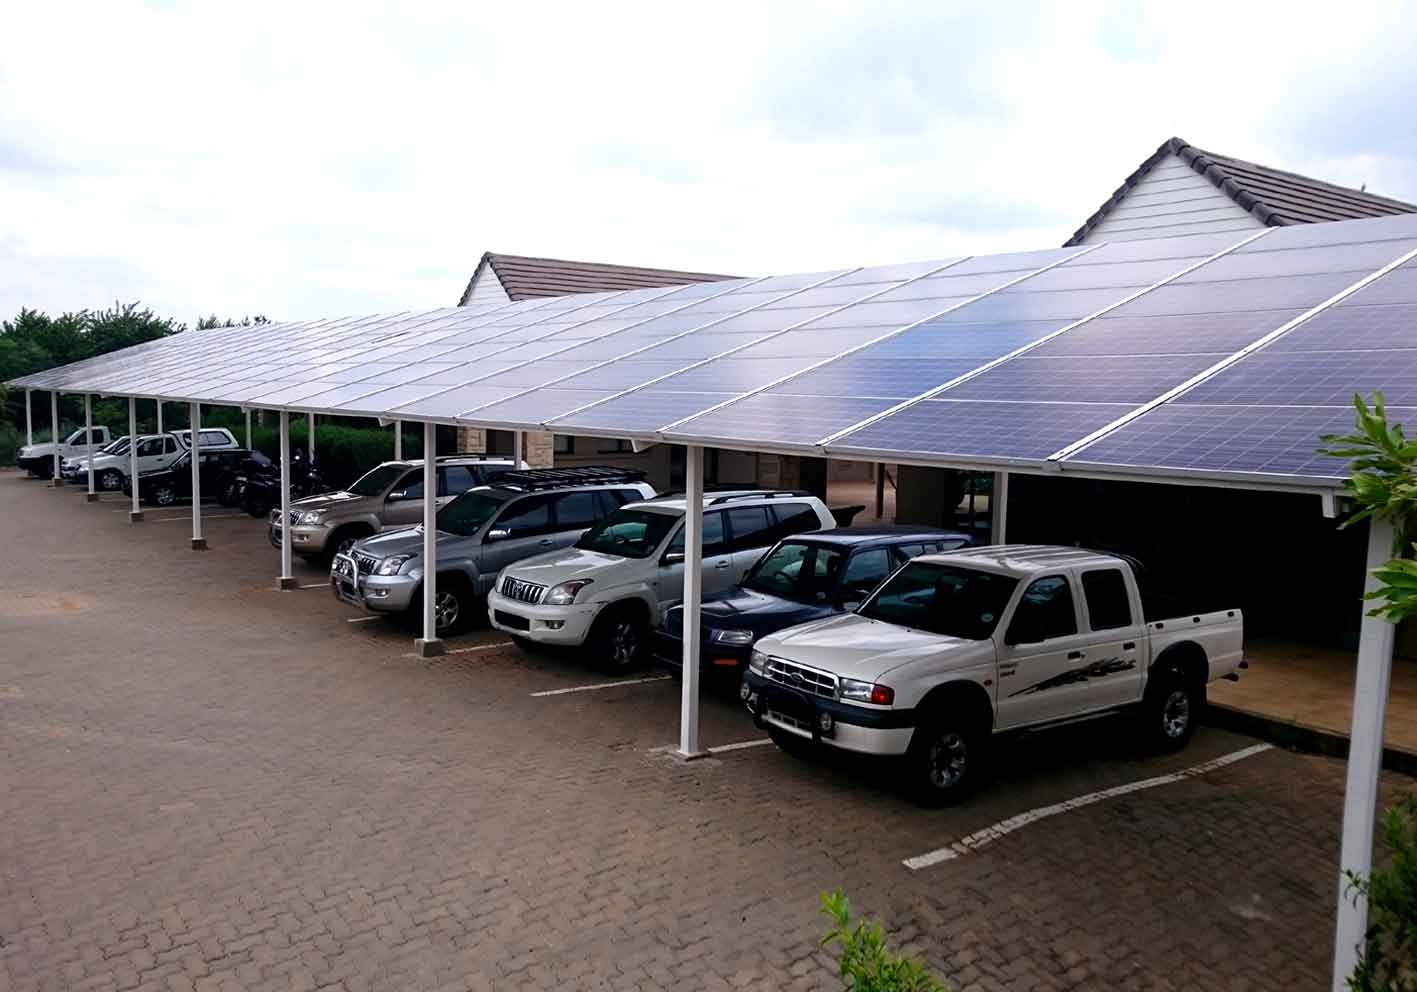 Home Solar Carport System : Solar carport cdd pv mounting structures and monitoring